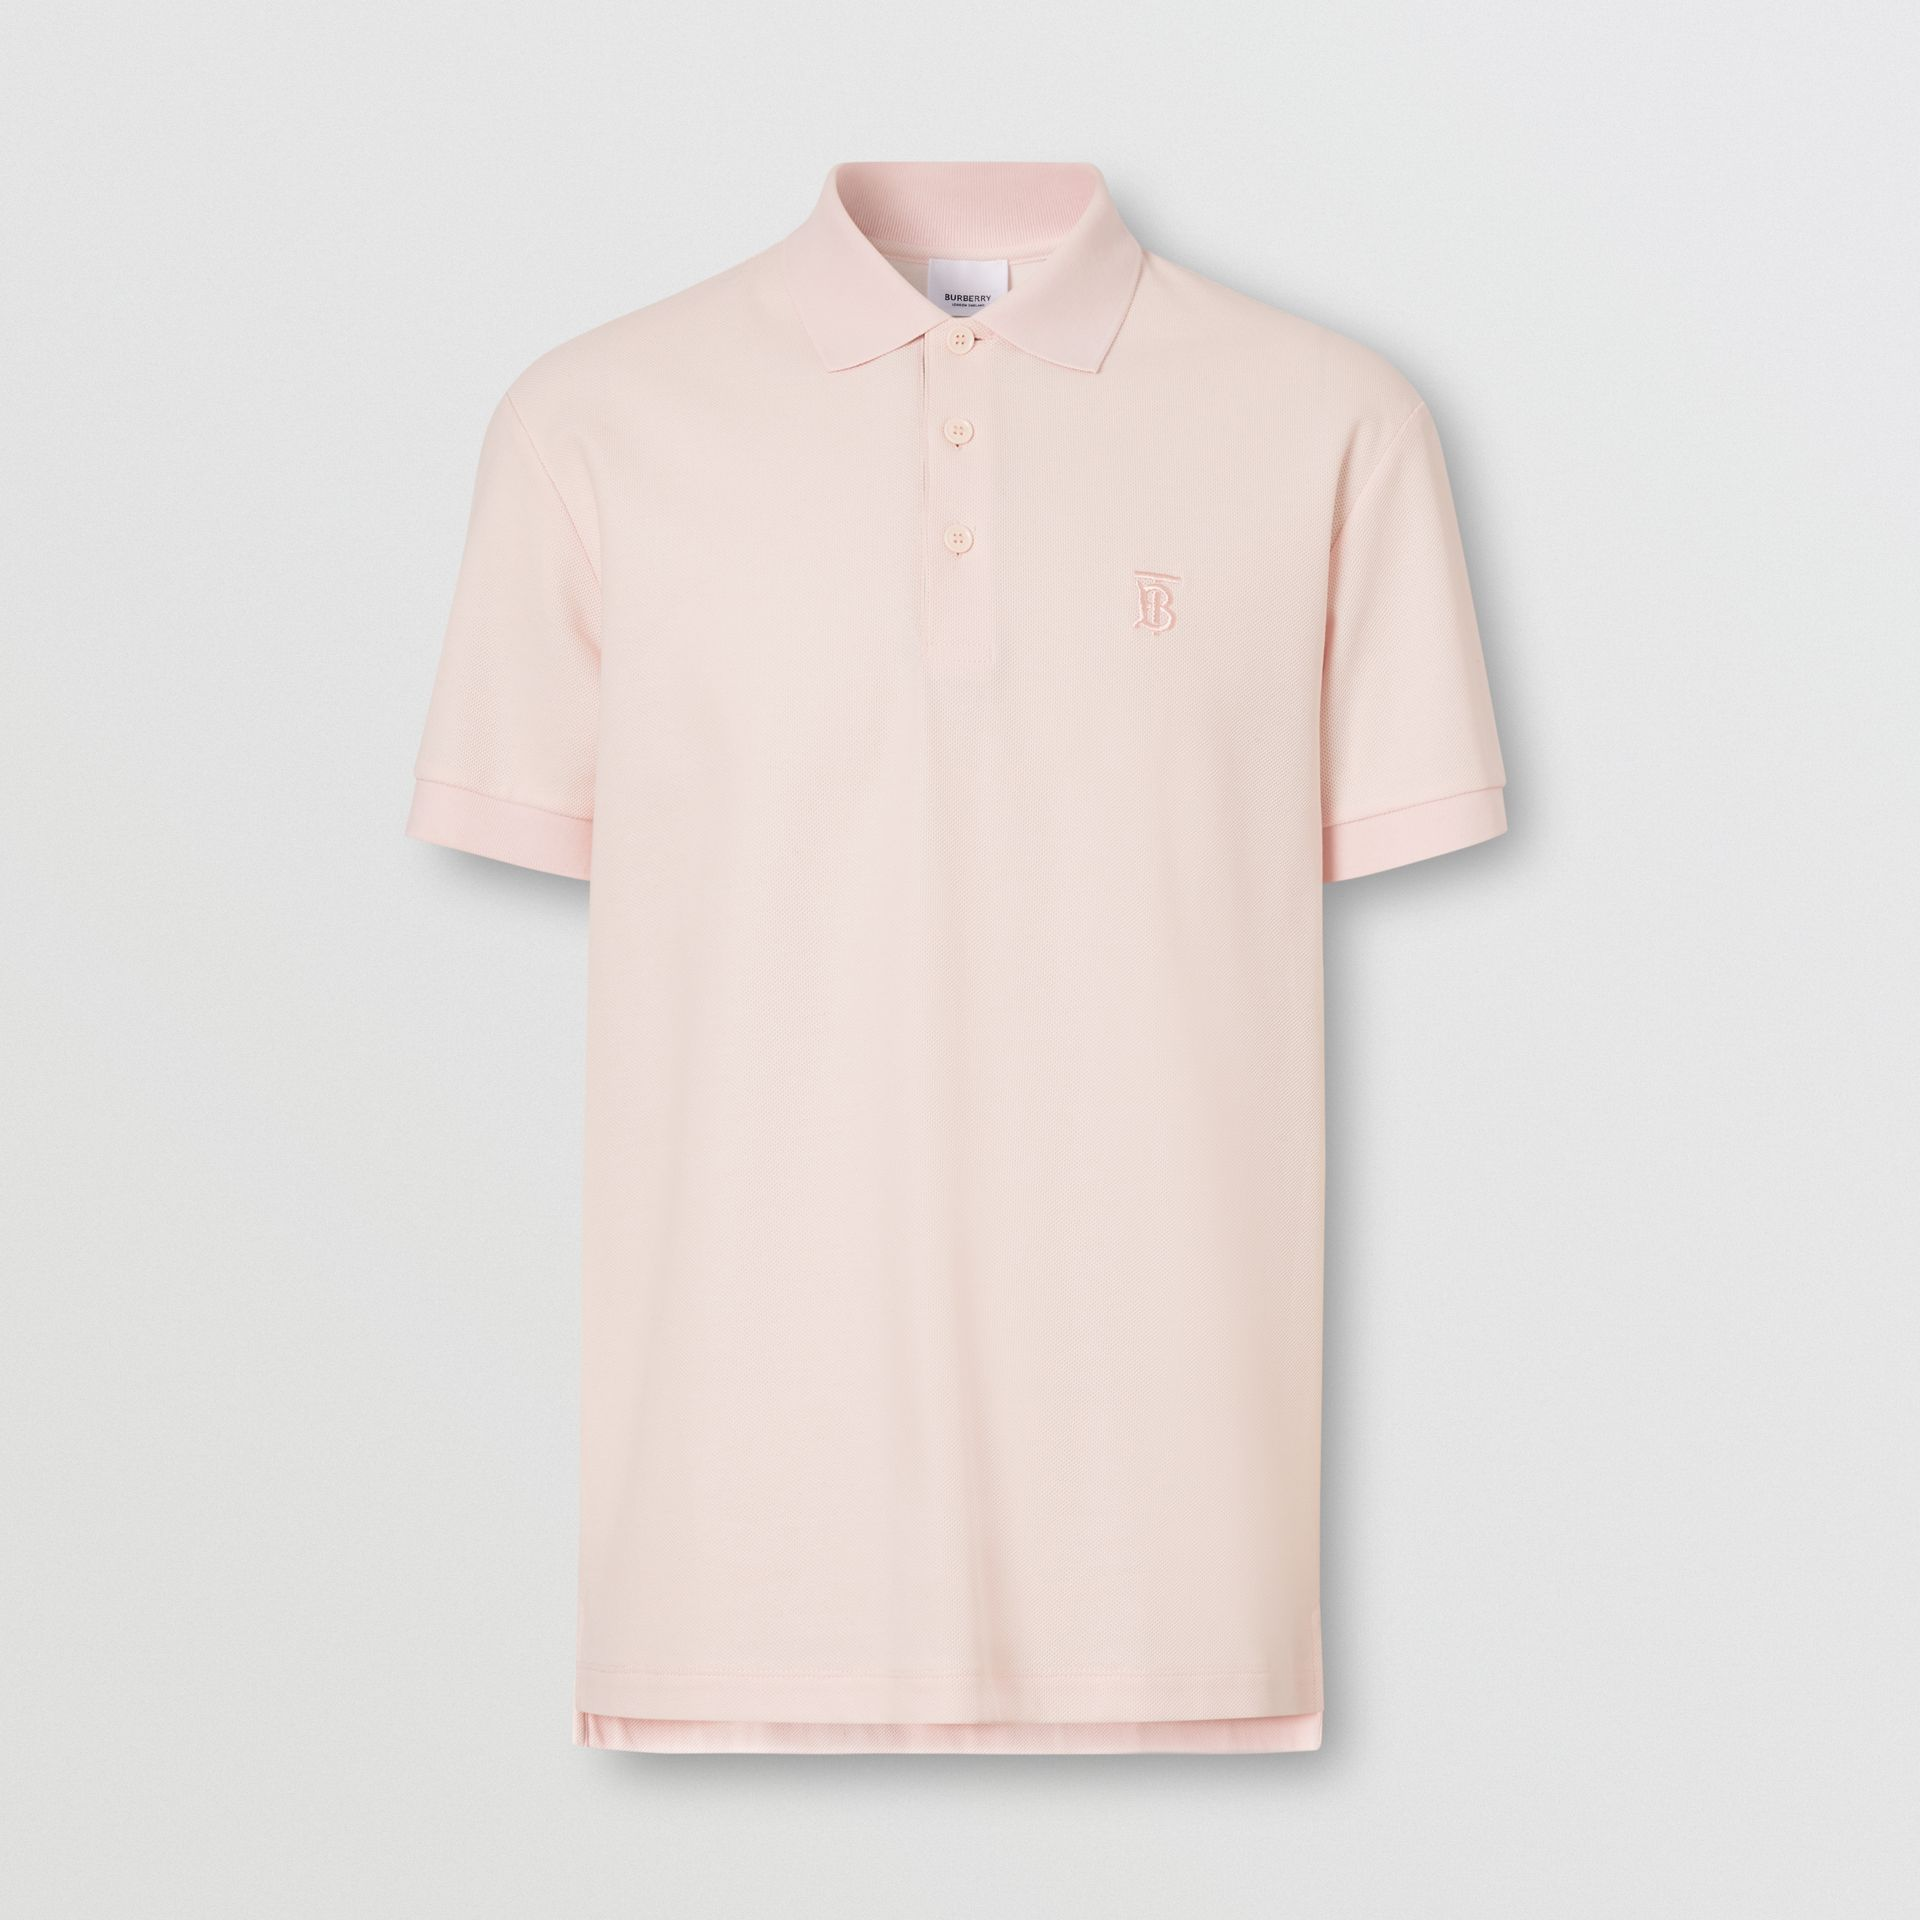 Monogram Motif Cotton Piqué Polo Shirt in Alabaster Pink - Men | Burberry United Kingdom - gallery image 3